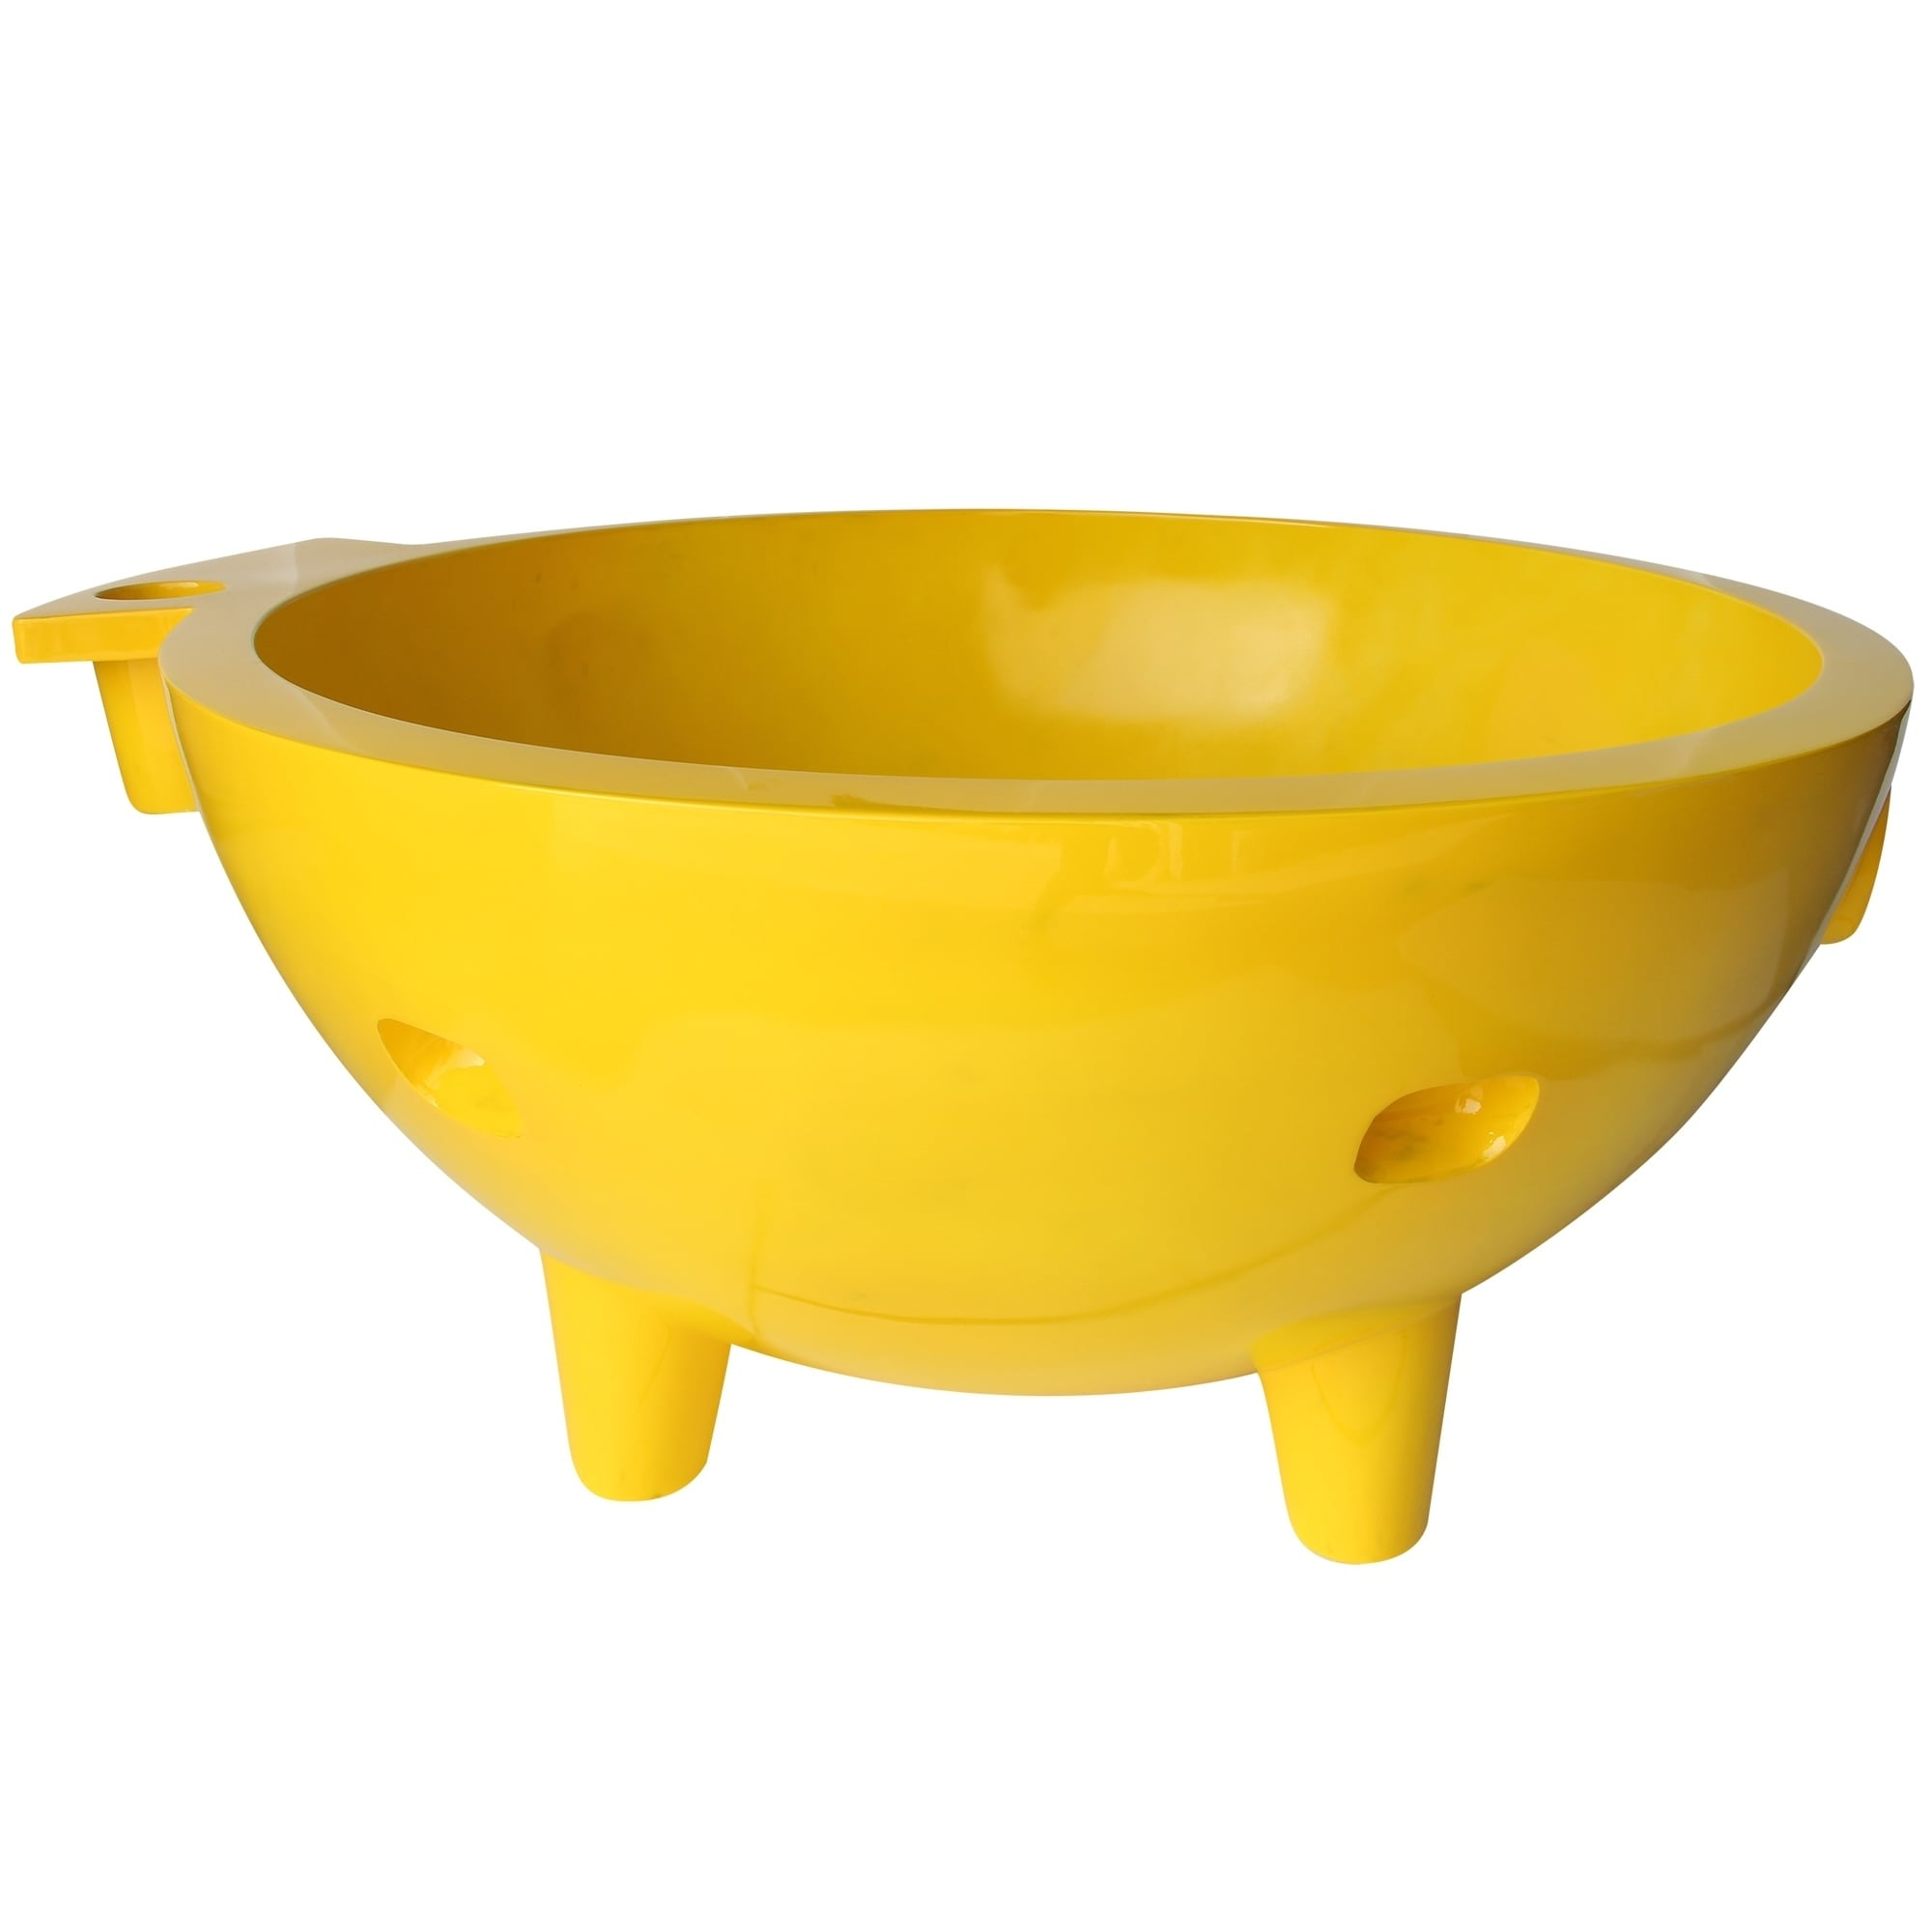 Shop ALFI Brand Yellow Fiberglass Round Portable Outdoor Hot Tub ...